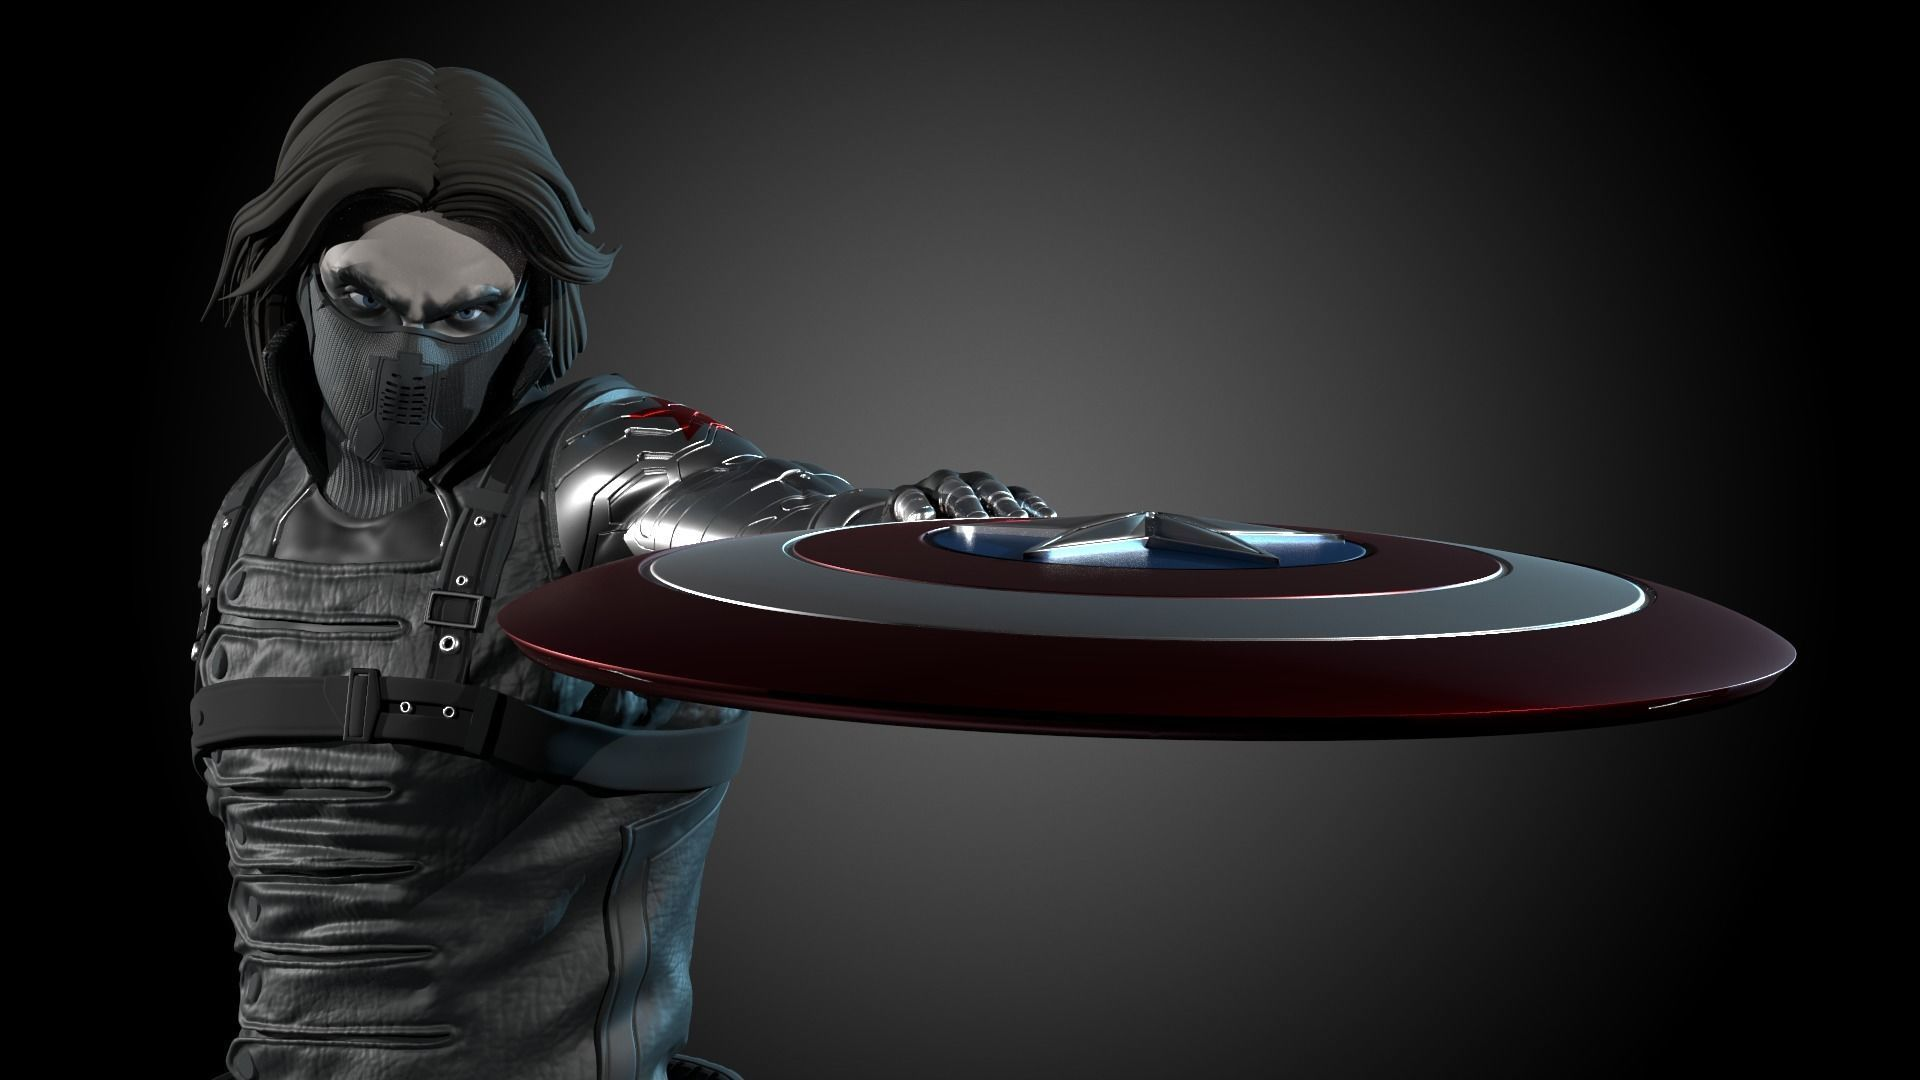 Winter Soldier Statue 3d Print Ready